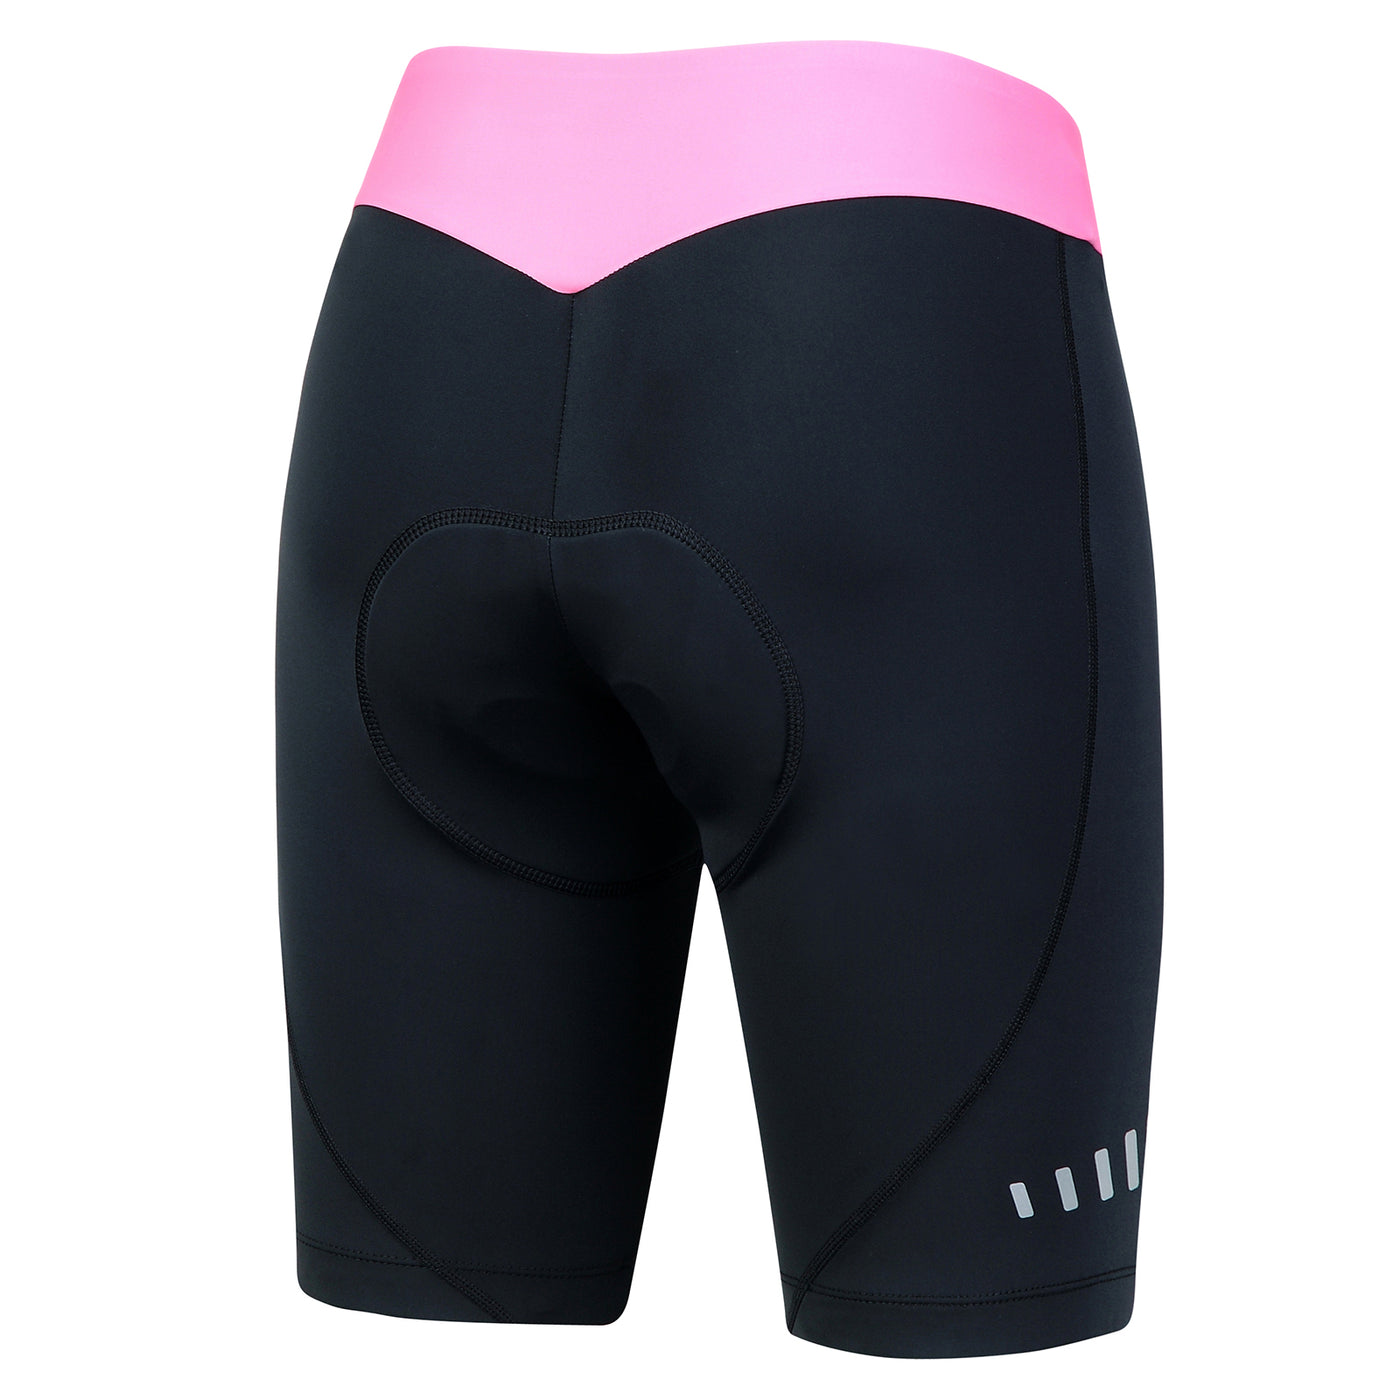 BEROY Womens Cycling Underwear Shorts 3D Padded Bicycle Undershorts Highly Breathable Comfortable